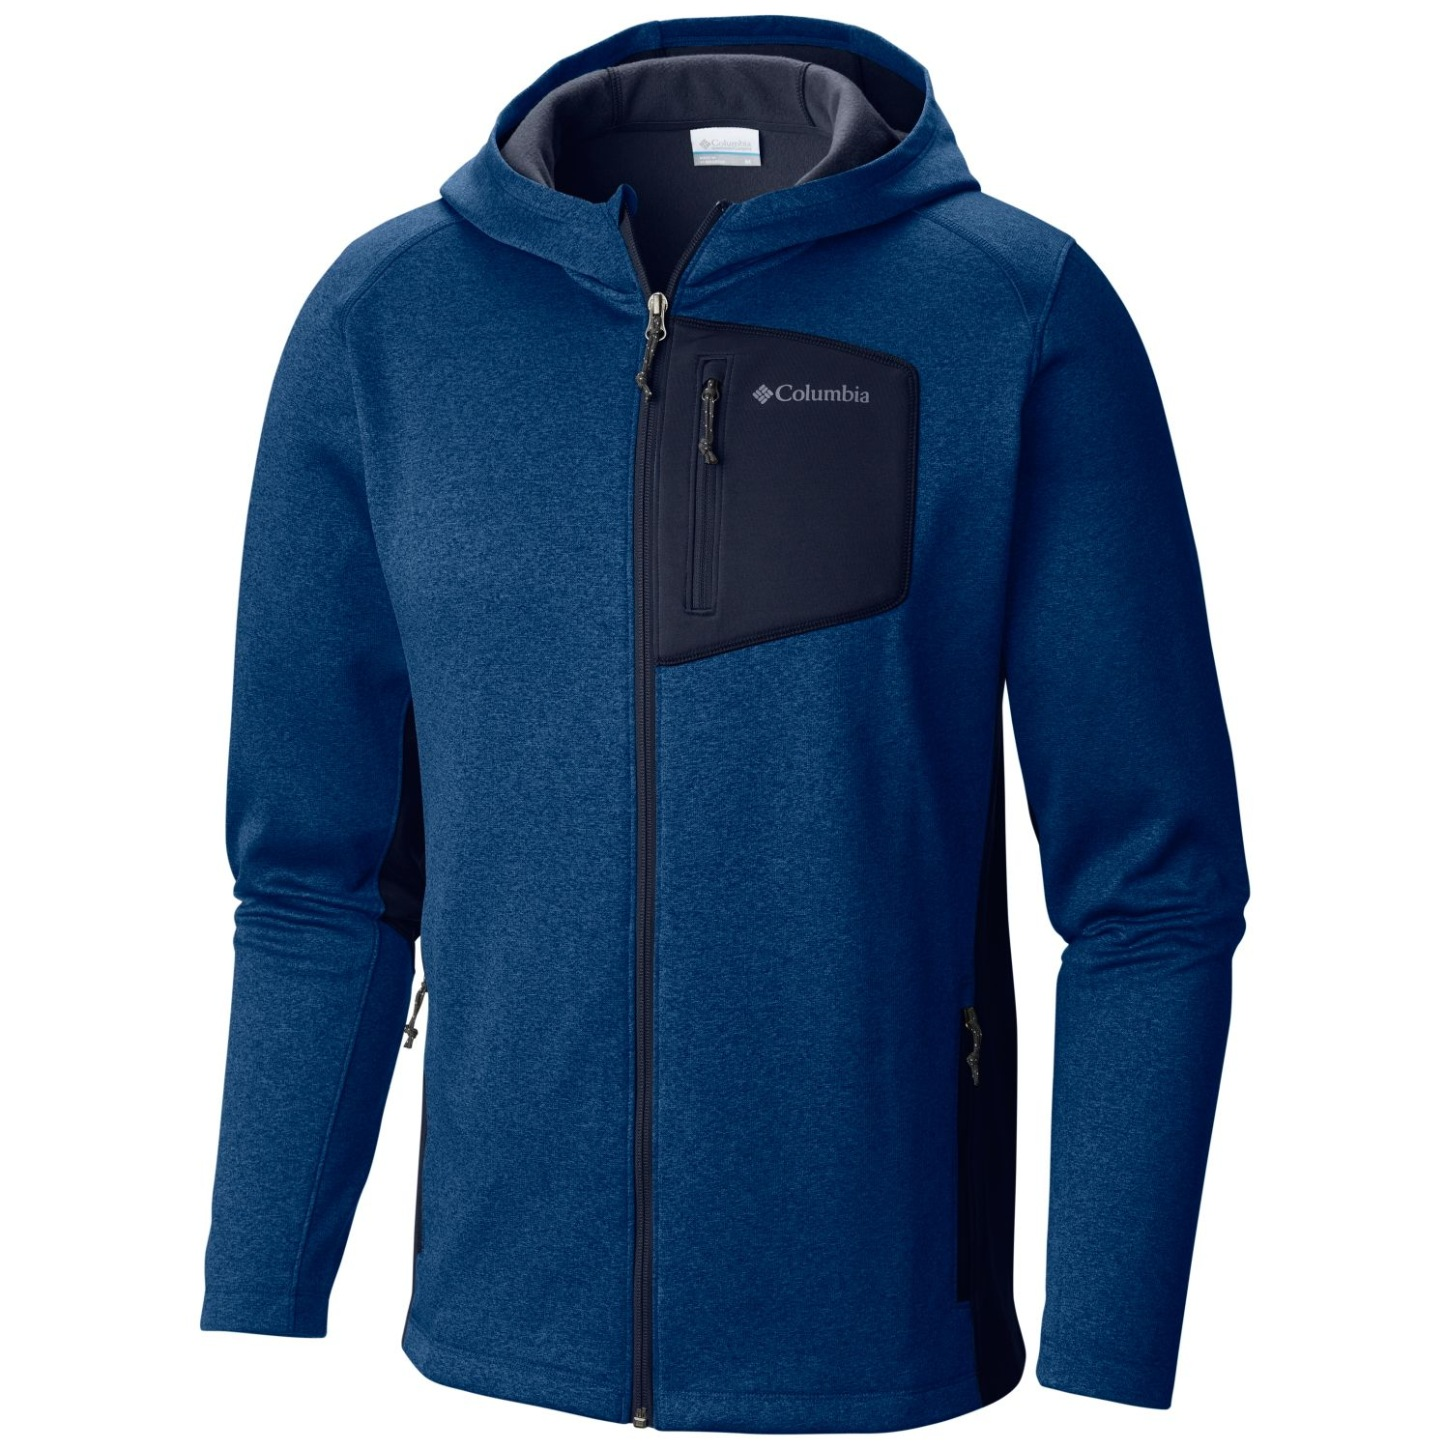 Columbia Men's Jackson Creek II Hoodie Marine Blue Heather-30